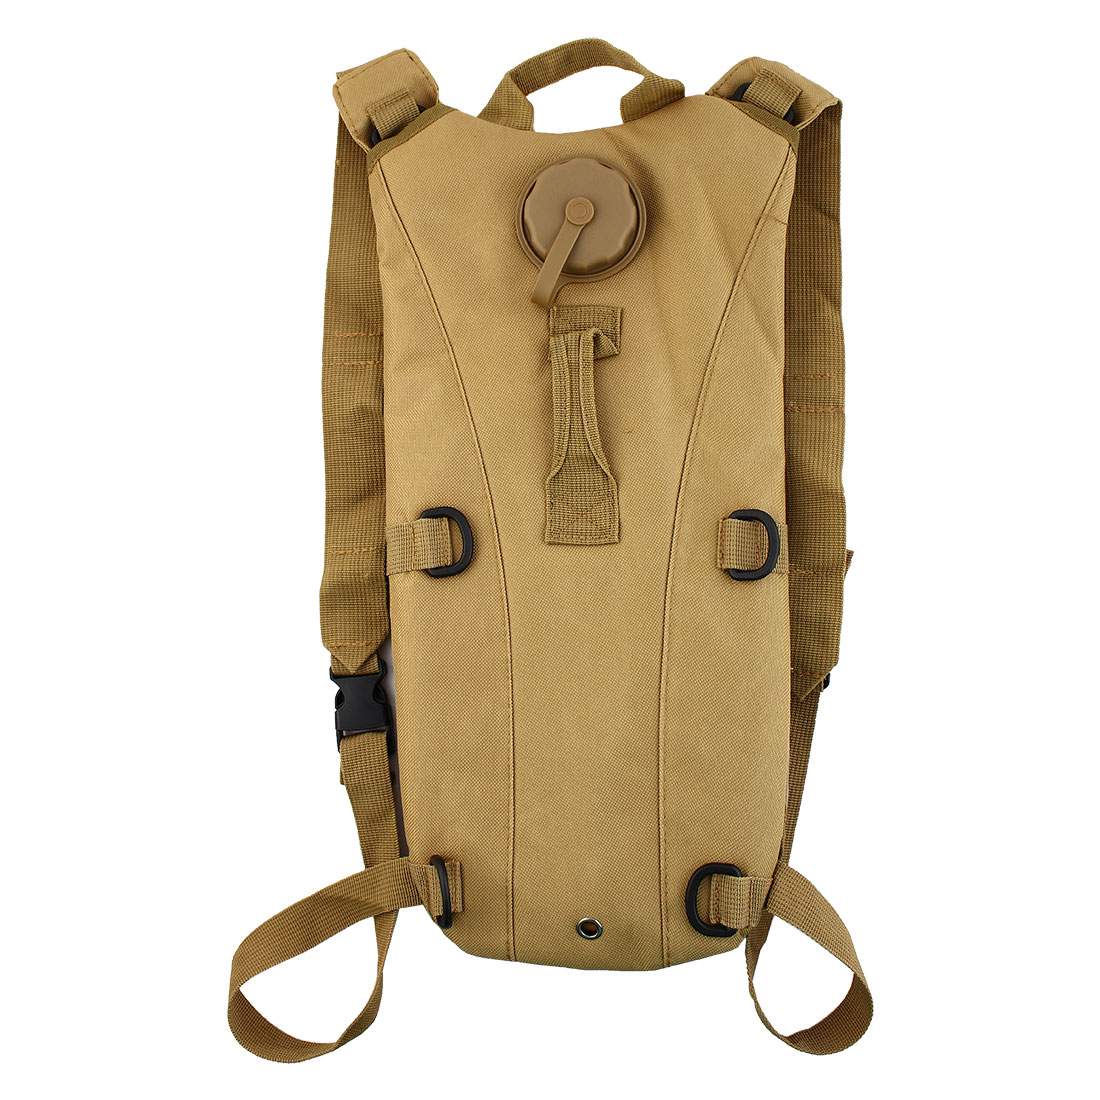 Outdoor Bicycle Bike Traveling Hiking Camping Cycling Hydration Pack Backpack Dark Khaki w 3L Water Bladder Bag